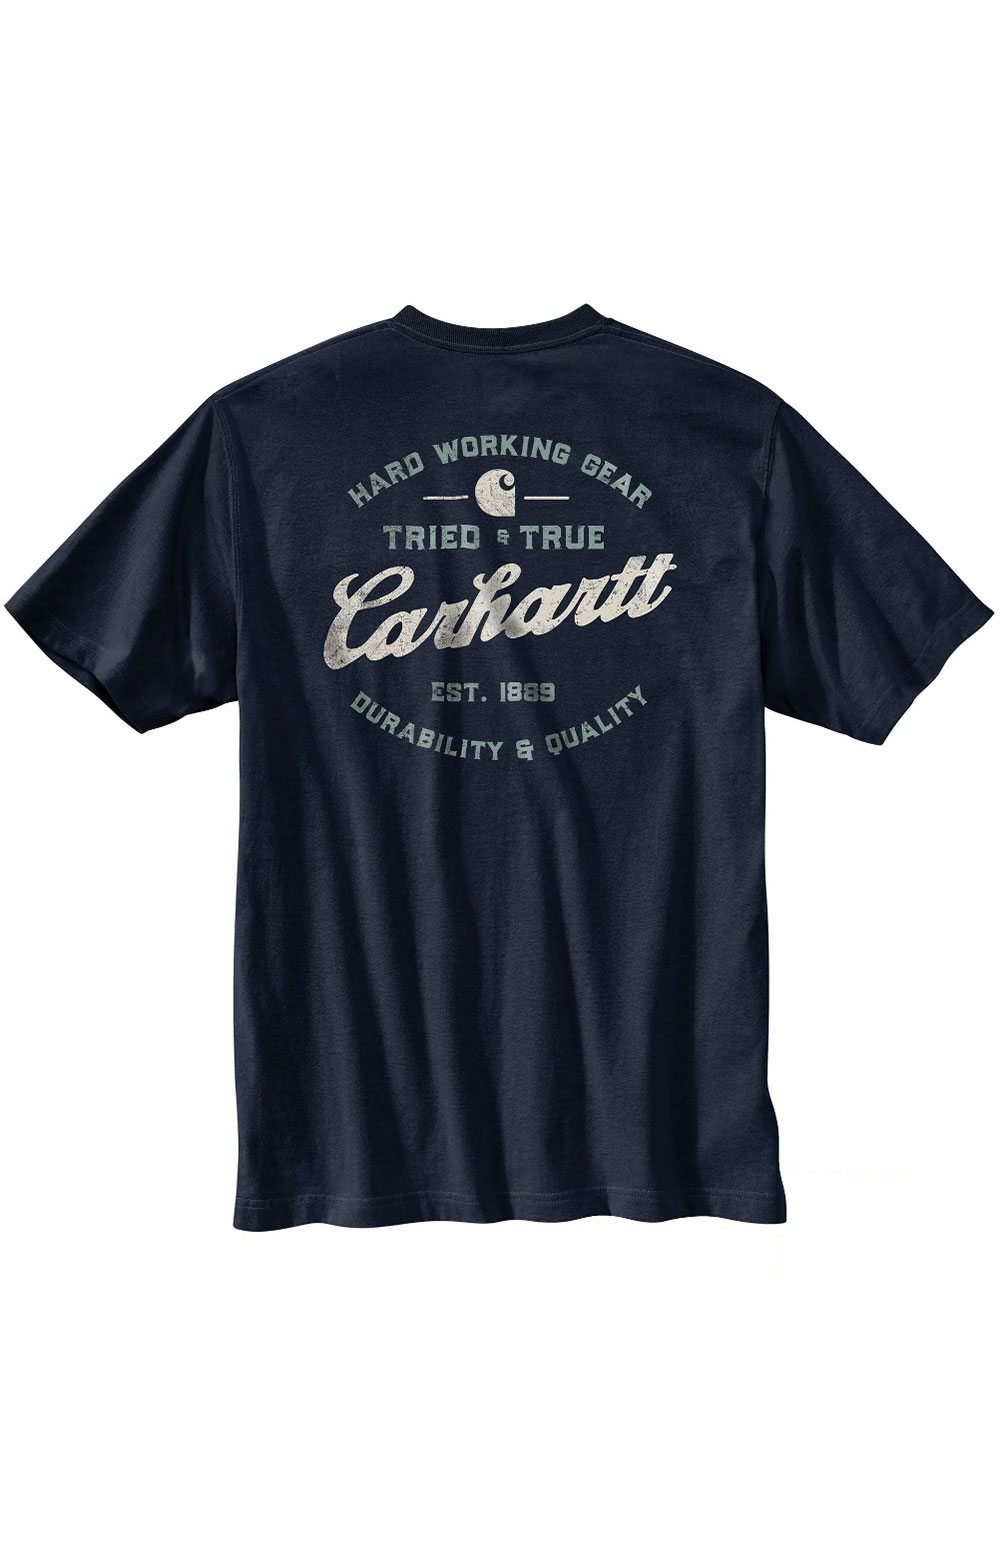 (104612) Relaxed Fit HW S/S Pocket Tried And True Graphic T-Shirt - Navy